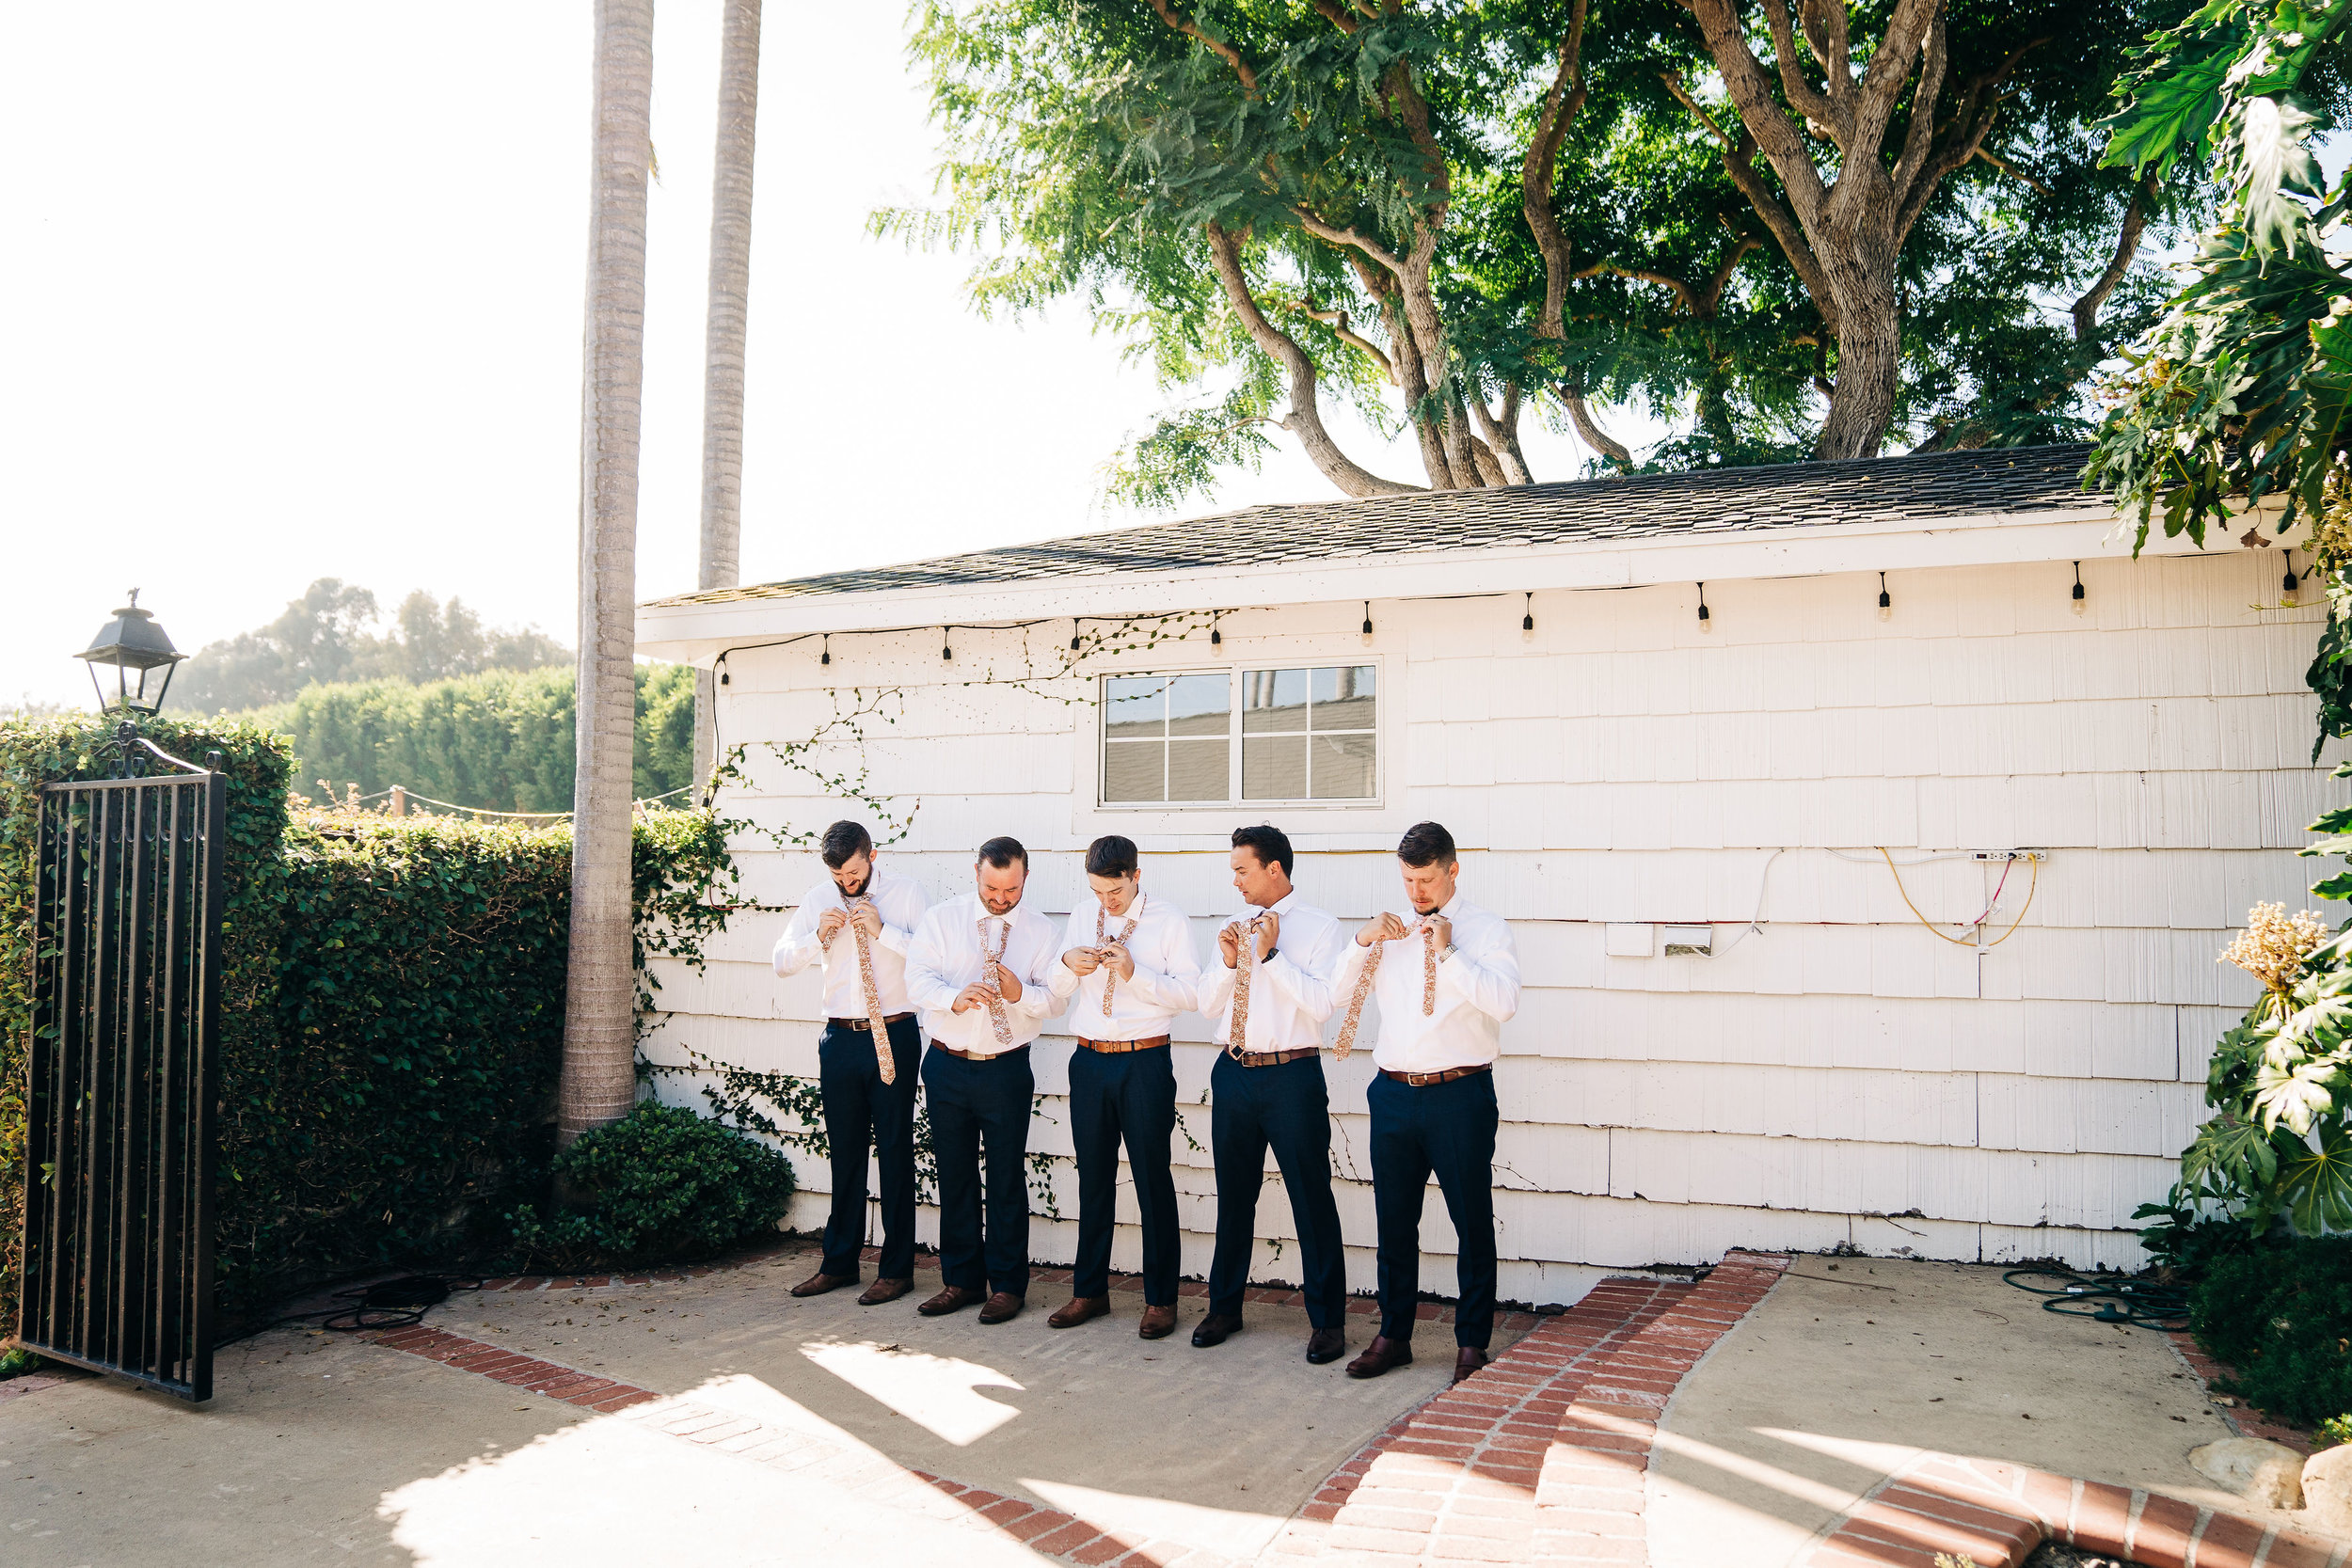 allie-shupe-tyler-wiggins-wedding-santa-barbara 018.jpg